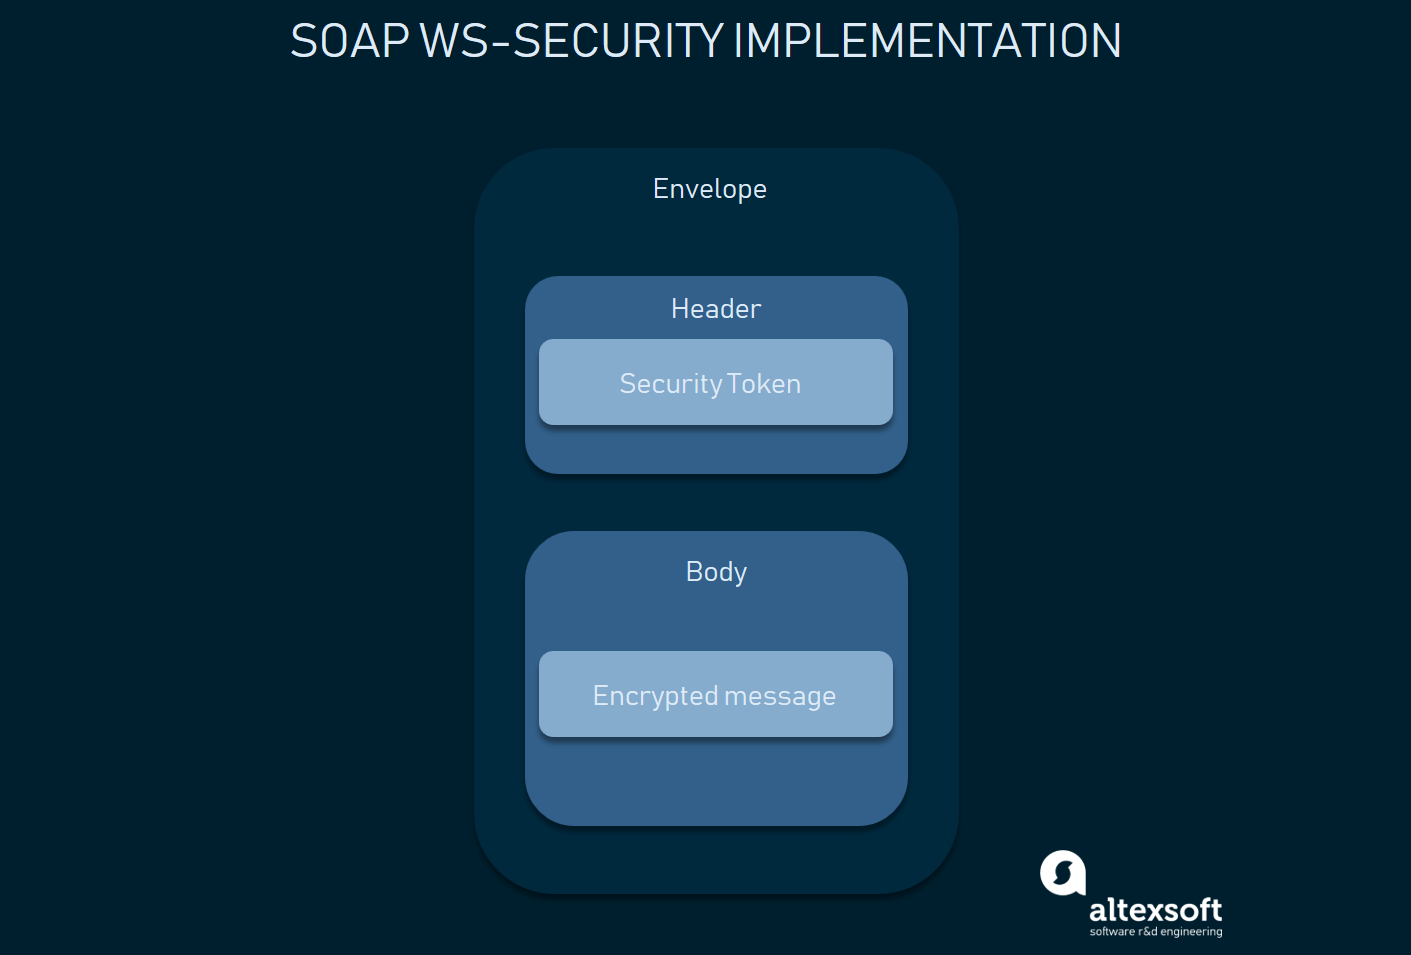 SOAP message-level security: authentication data in the header element and encrypted body